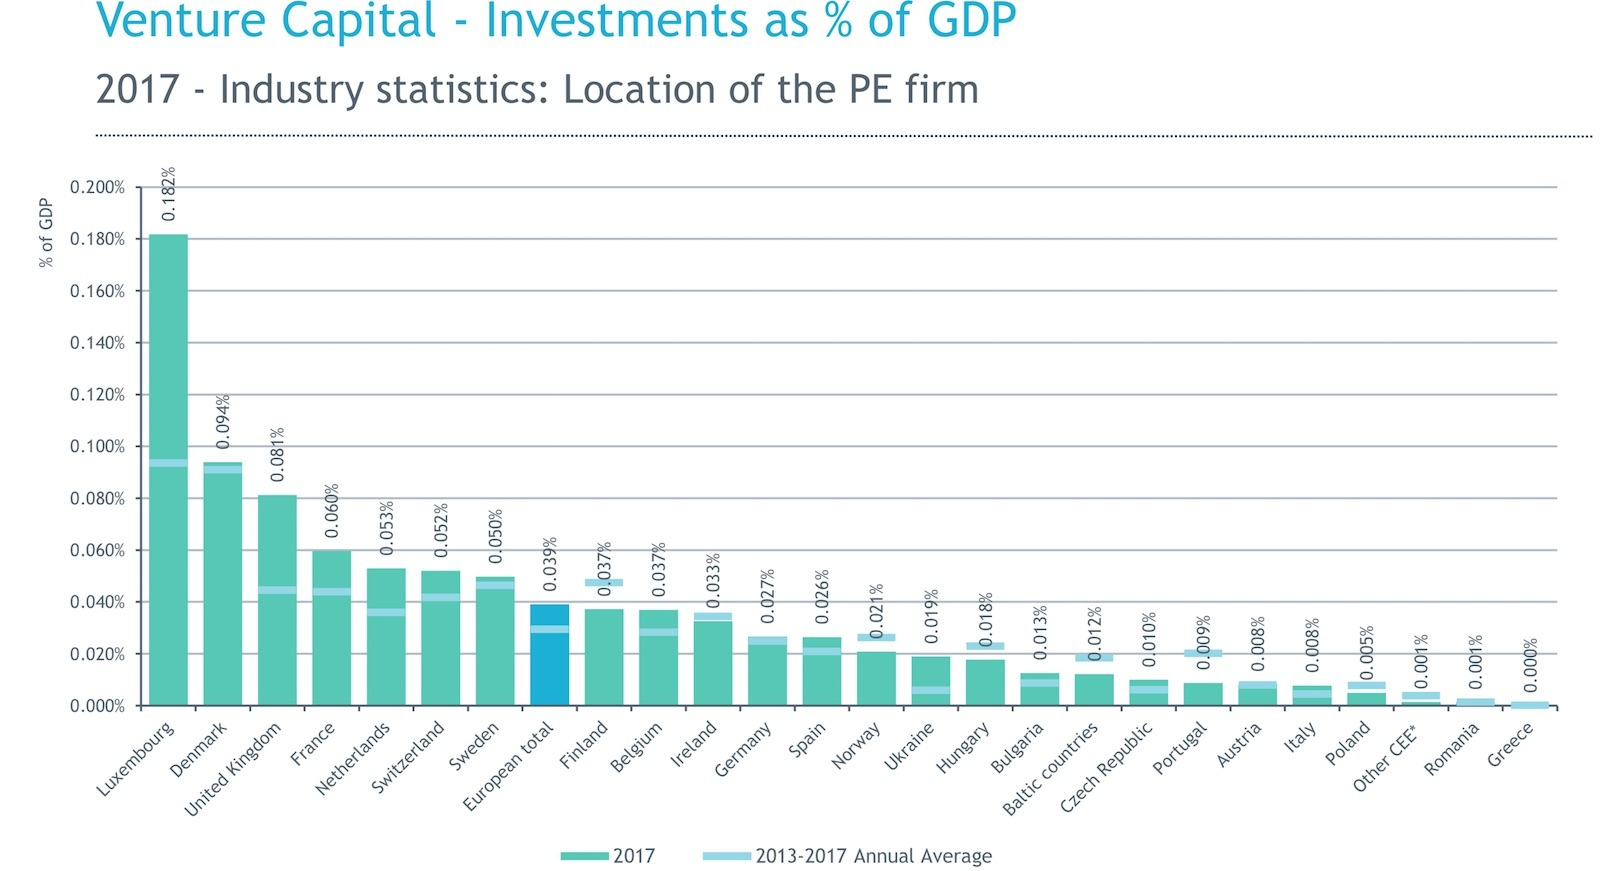 Investments by Finnish VC firms